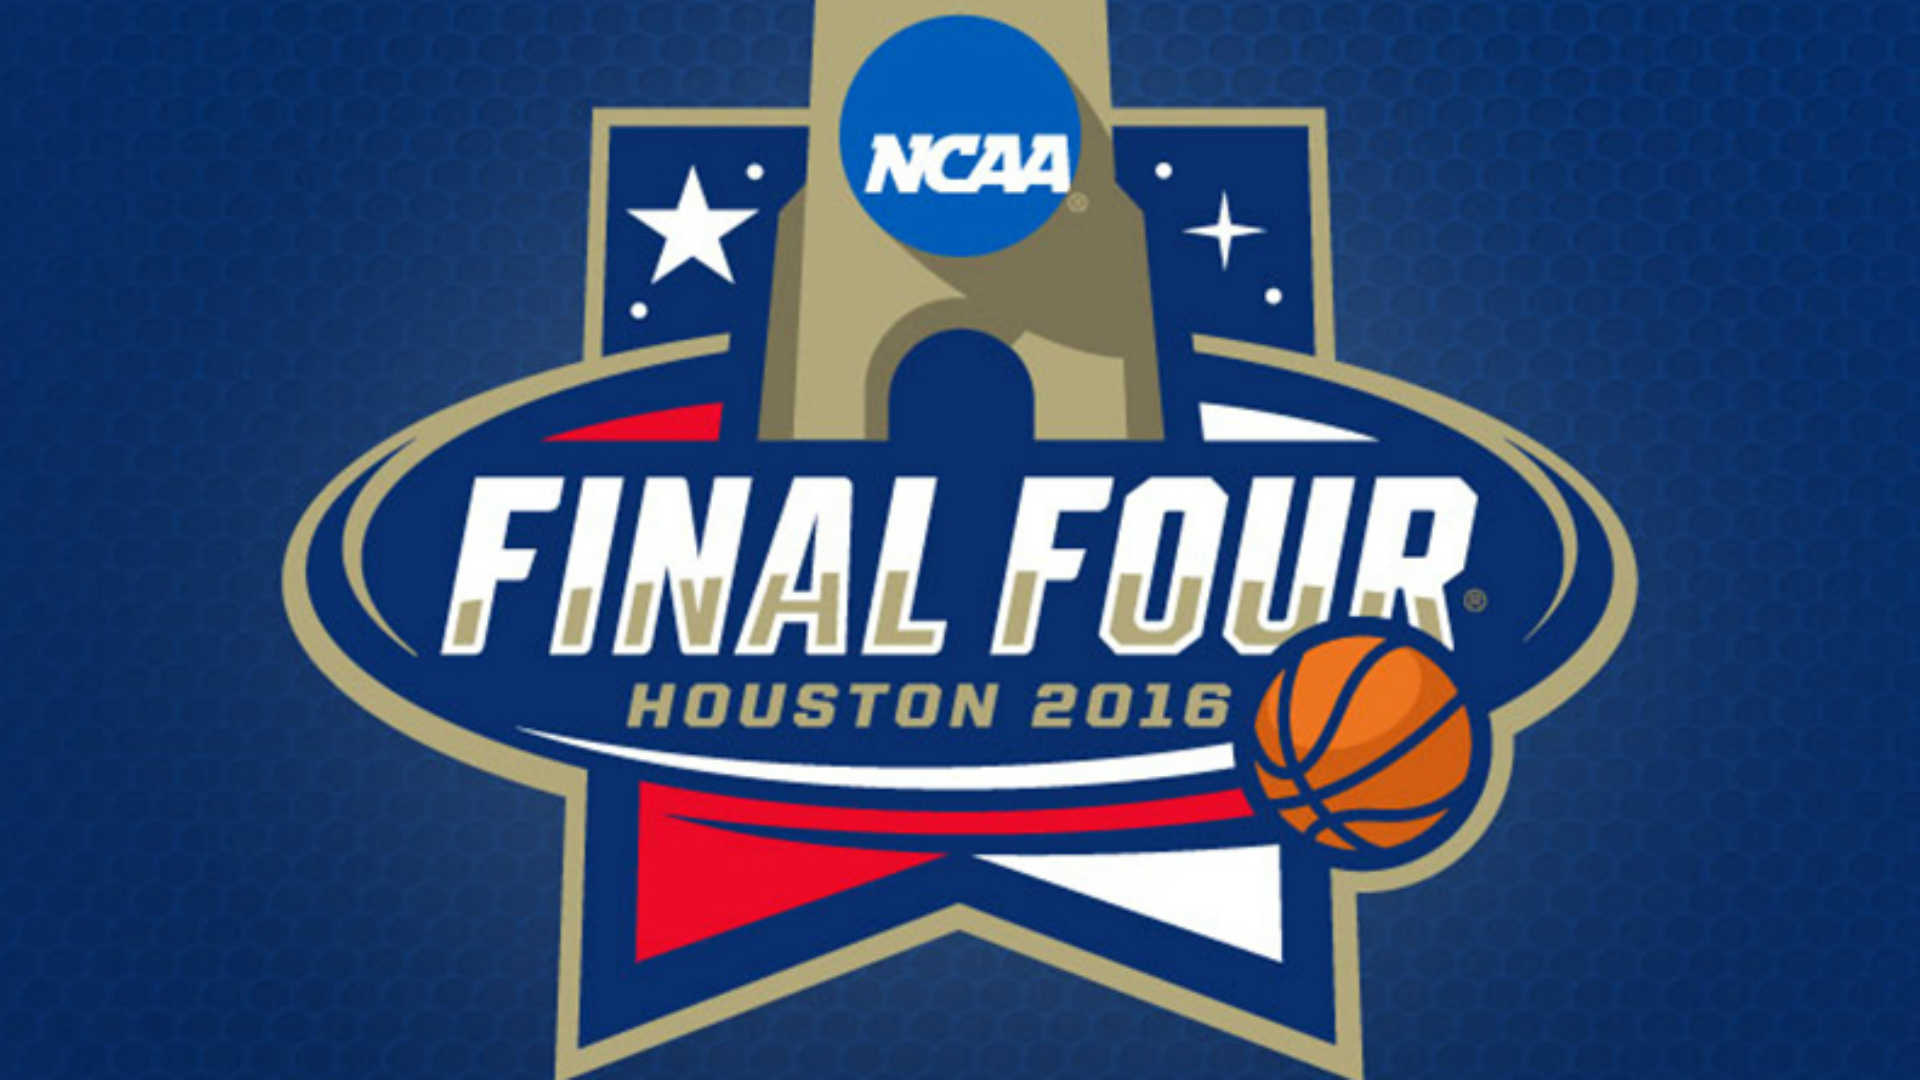 2016 Final Four: Site, TV schedule, streaming | NCAA ...